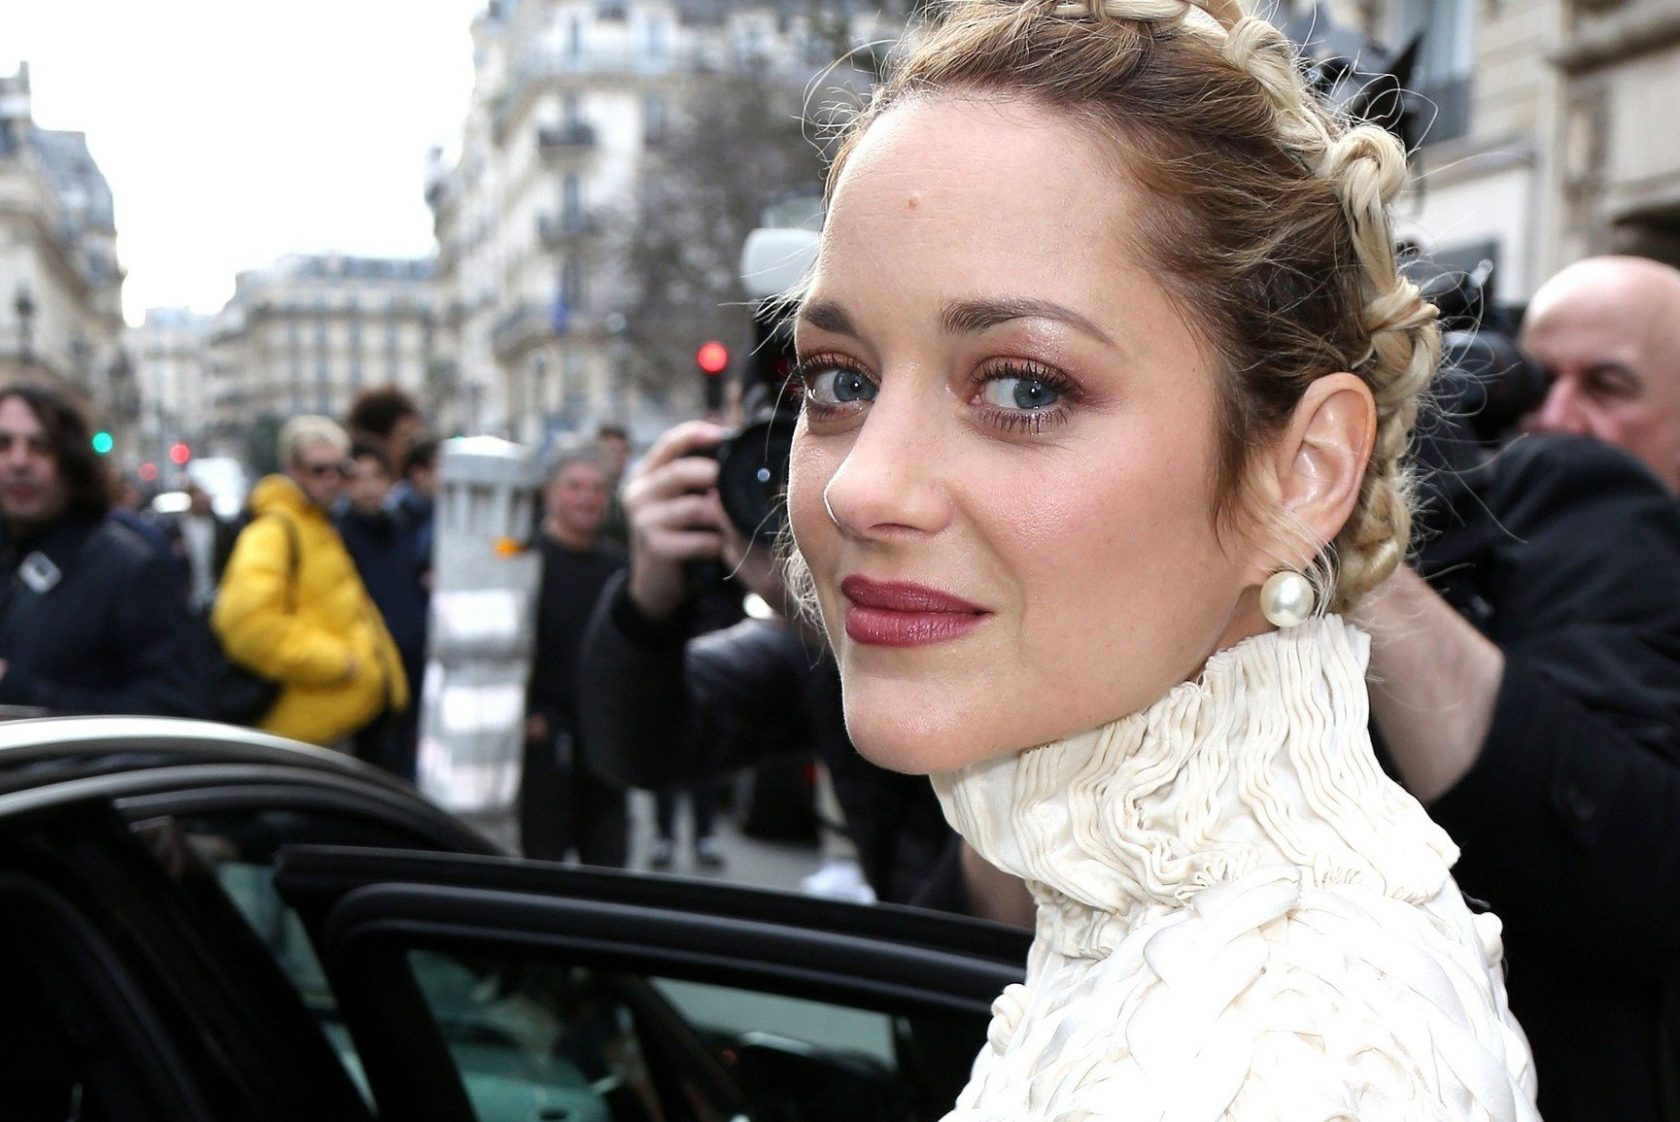 Marion Cotillard seen arriving at Jean-Paul Gaultier Fashion Show in Paris on January 24 2018. //HAEDRICHJM_001JMH/Credit:Jean-Marc Haedrich/SIPA/1801250516, Image: 361277781, License: Rights-managed, Restrictions: , Model Release: no, Credit line: Profimedia, TEMP Sipa Press